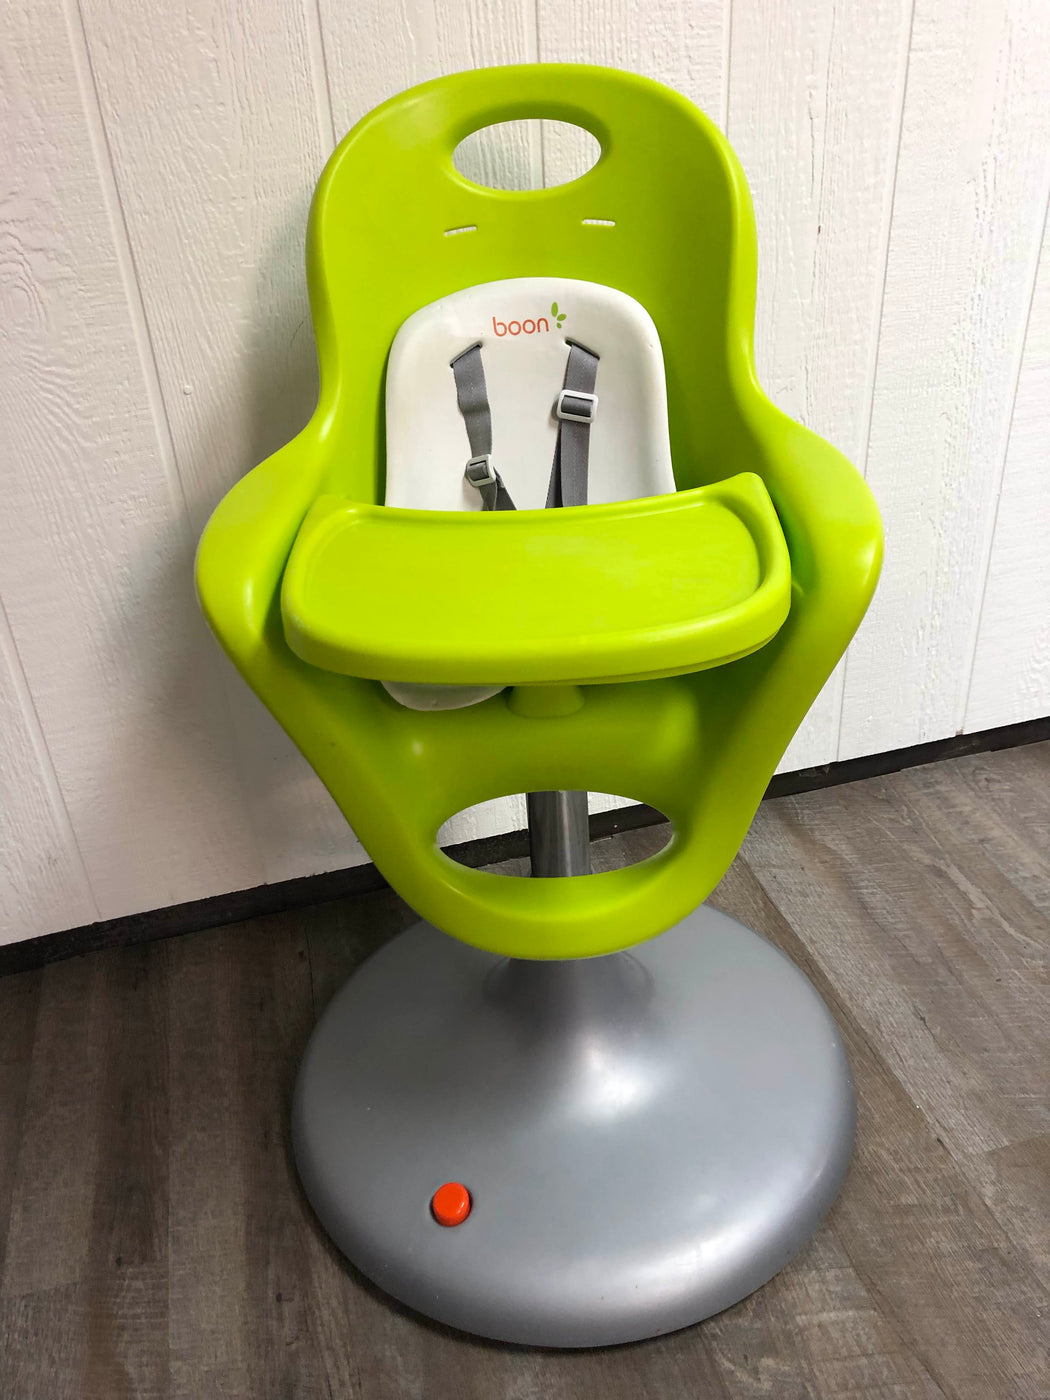 secondhand Boon Flair Highchair